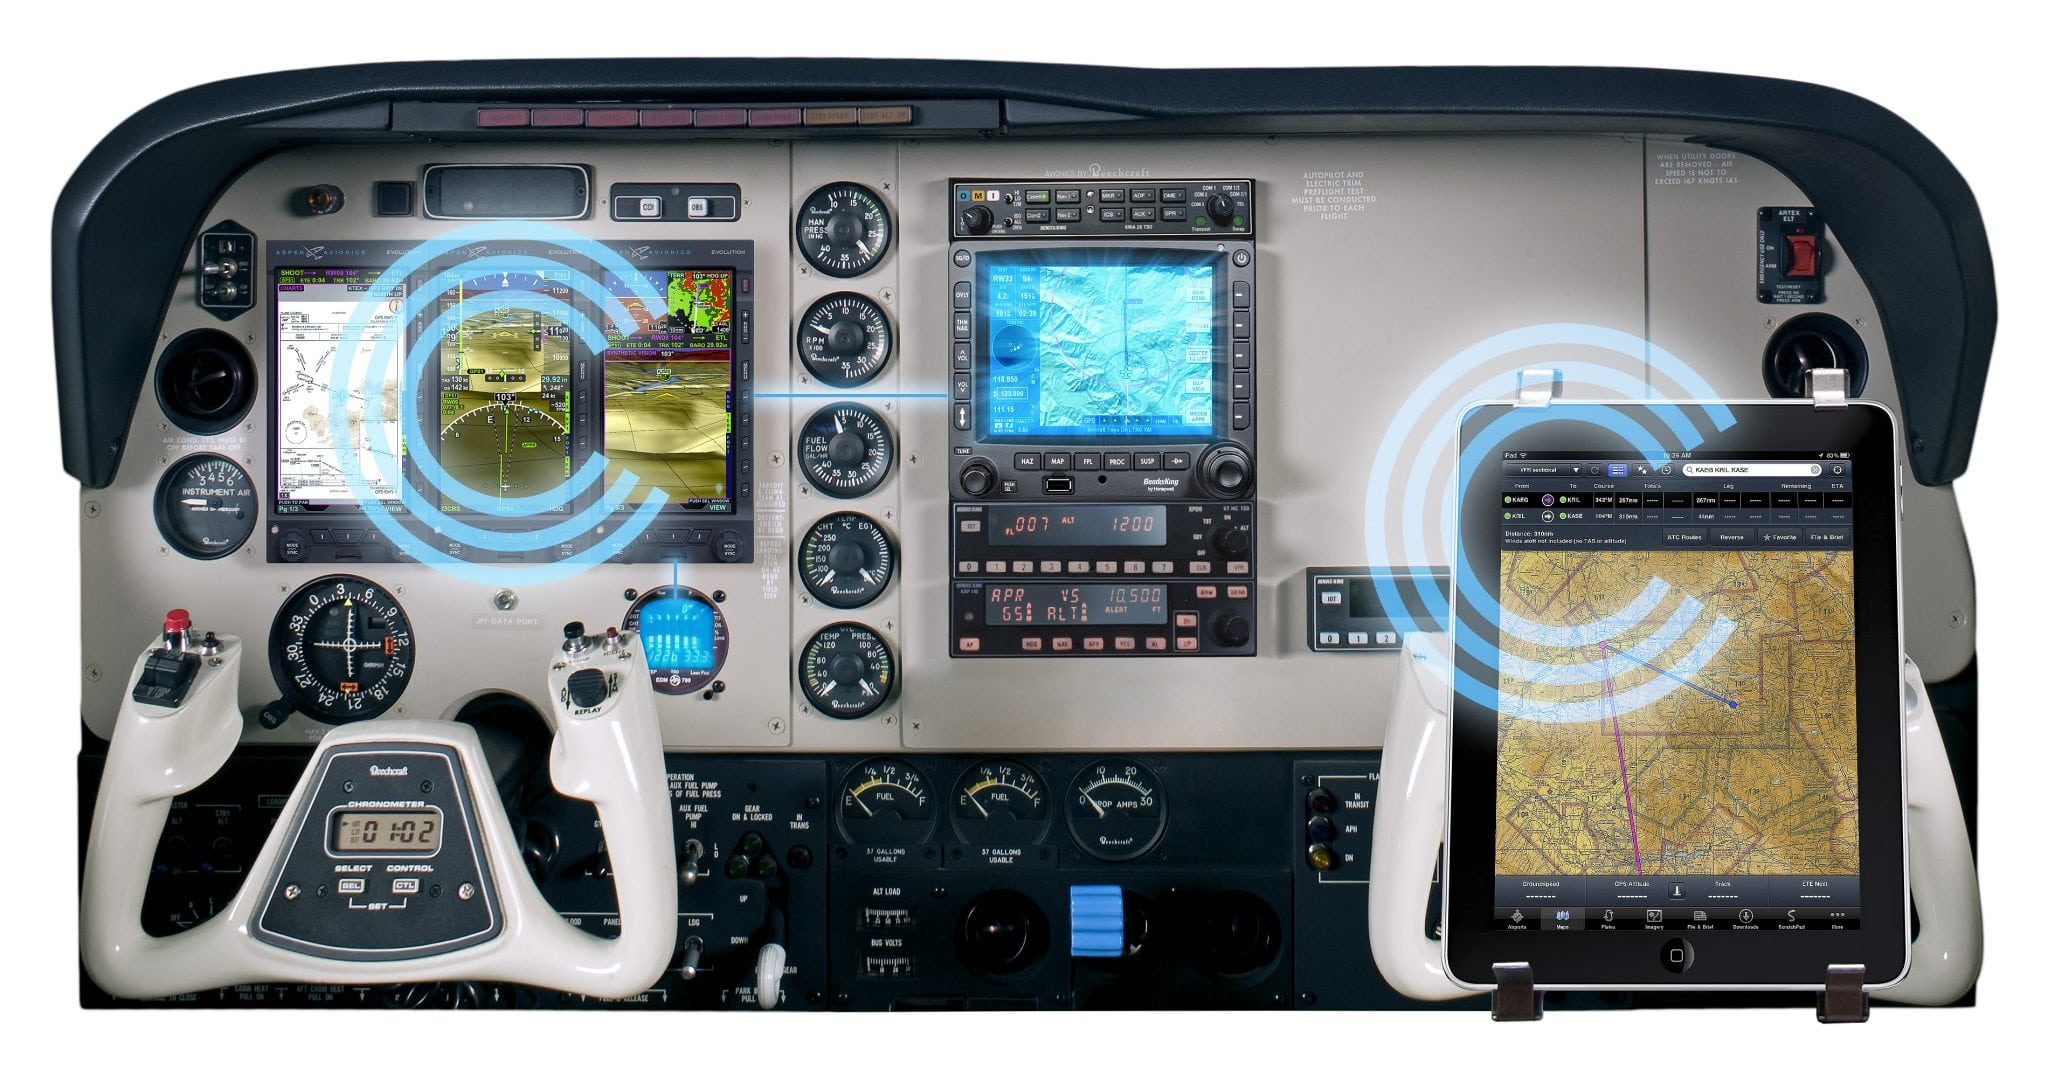 The connected panel concept from Aspen Avionics